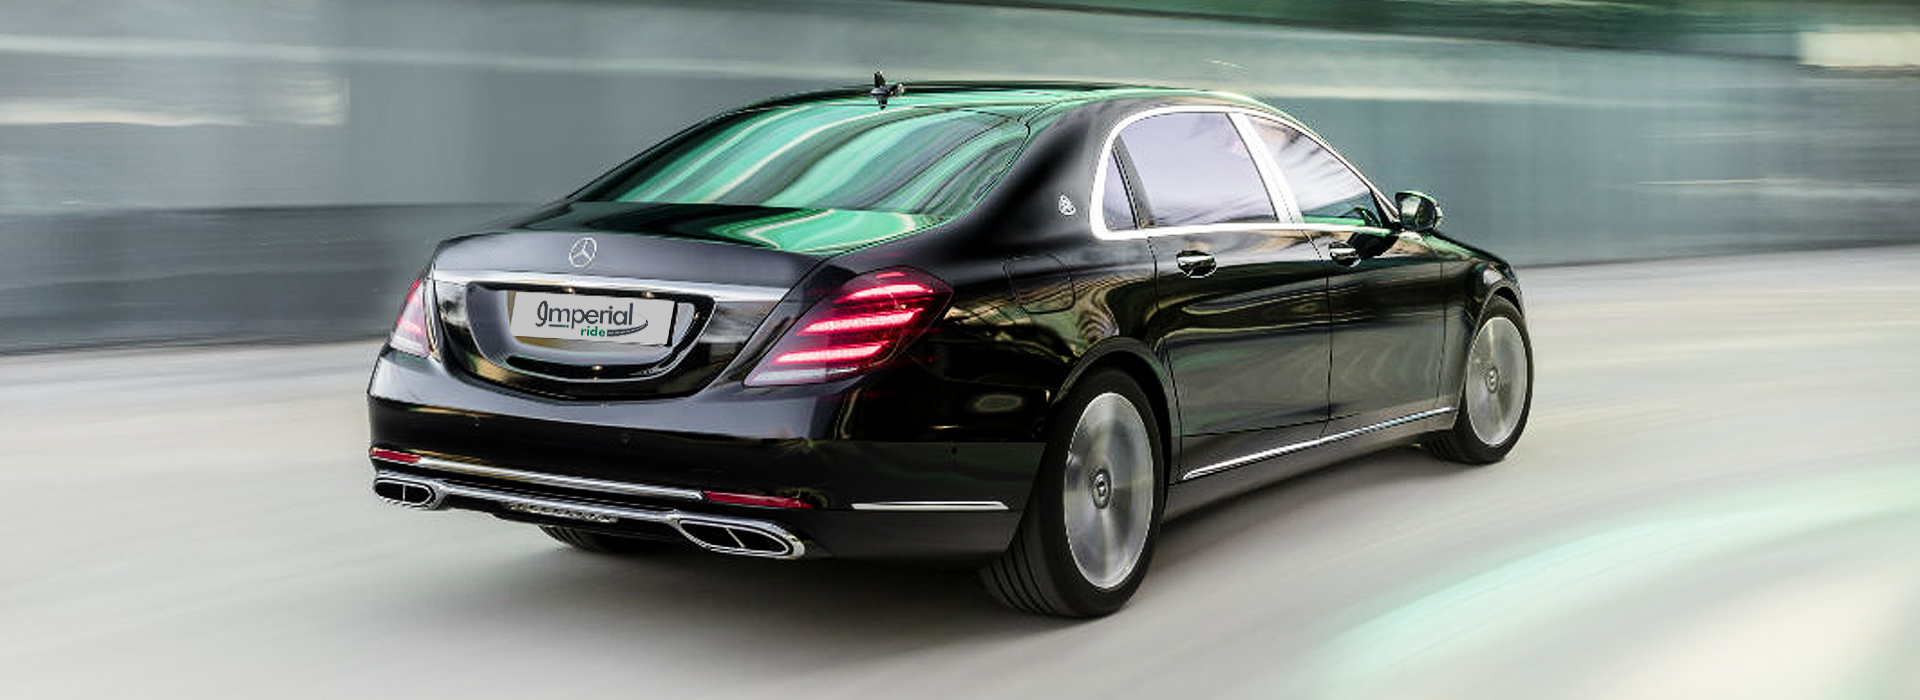 HIRE A MERCEDES V-CLASS CAR CHAUFFEUR WITH IMPERIAL RIDE